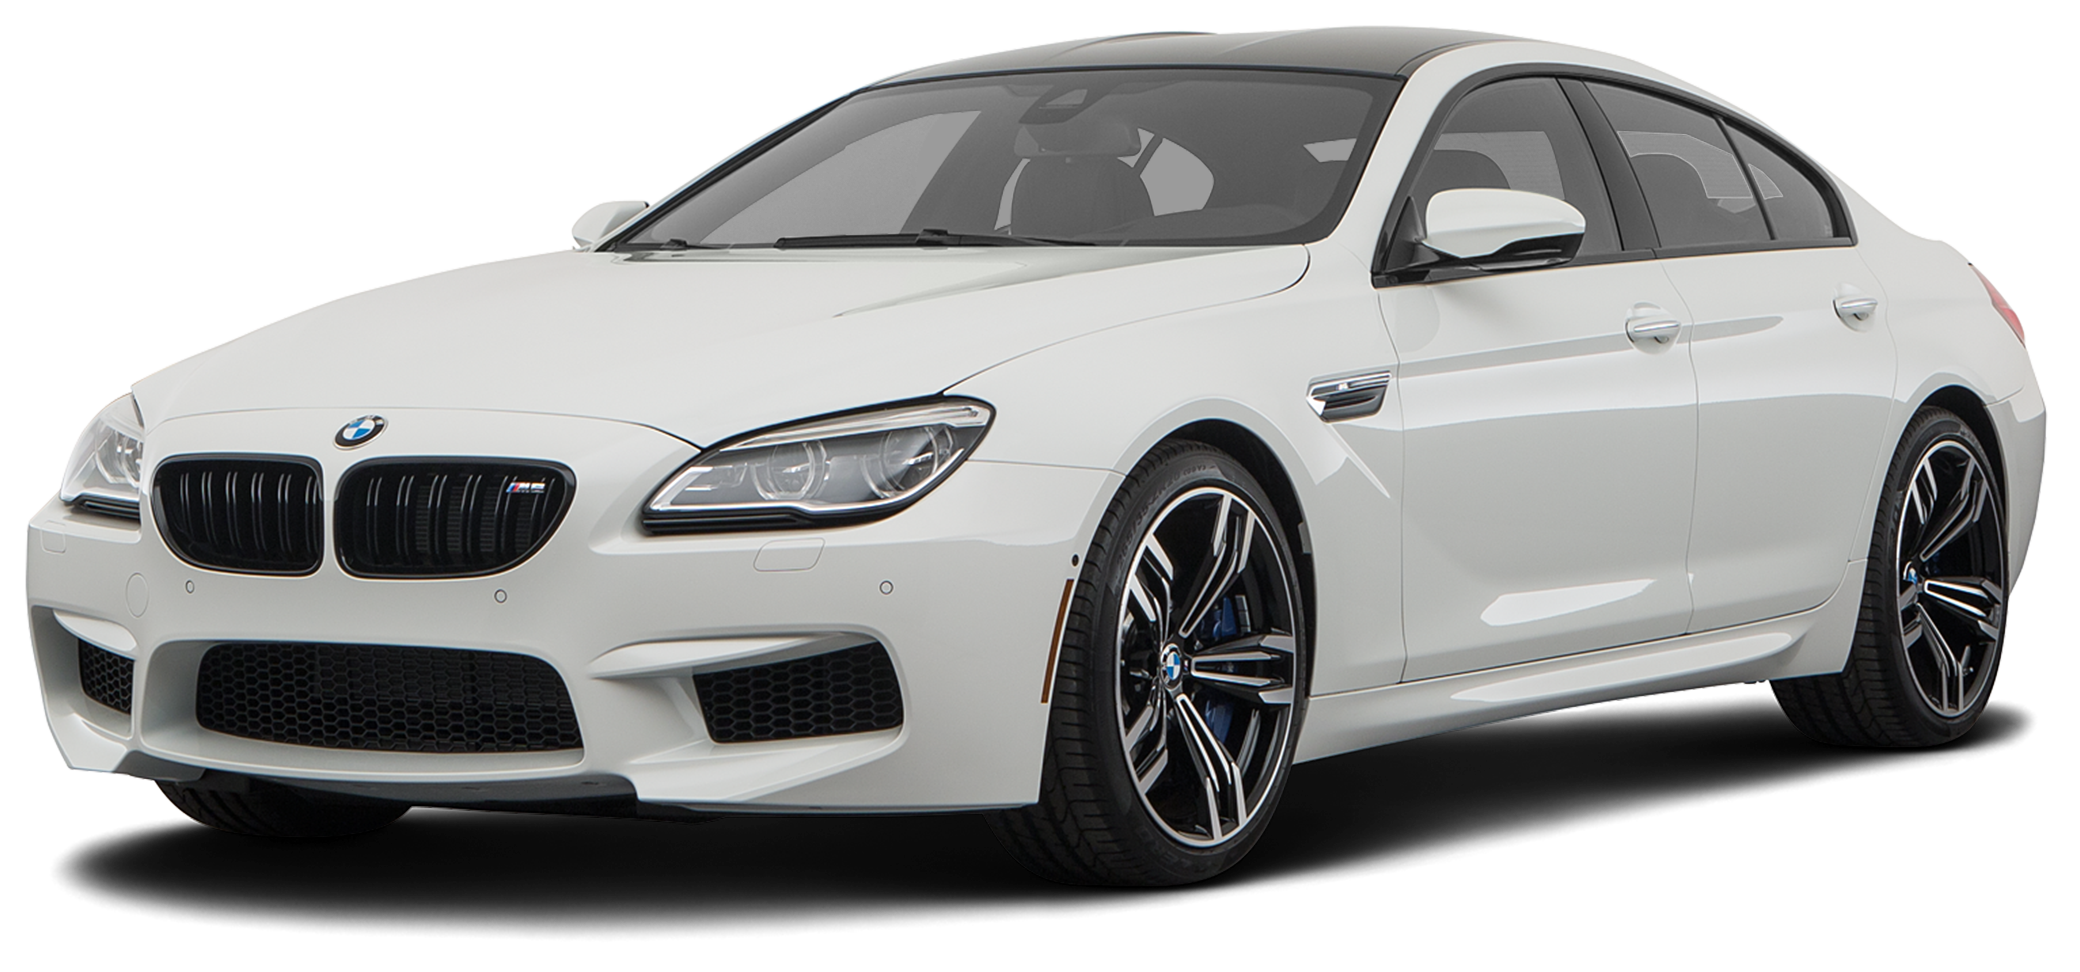 2019 BMW M6 Incentives Specials & fers in Houston TX